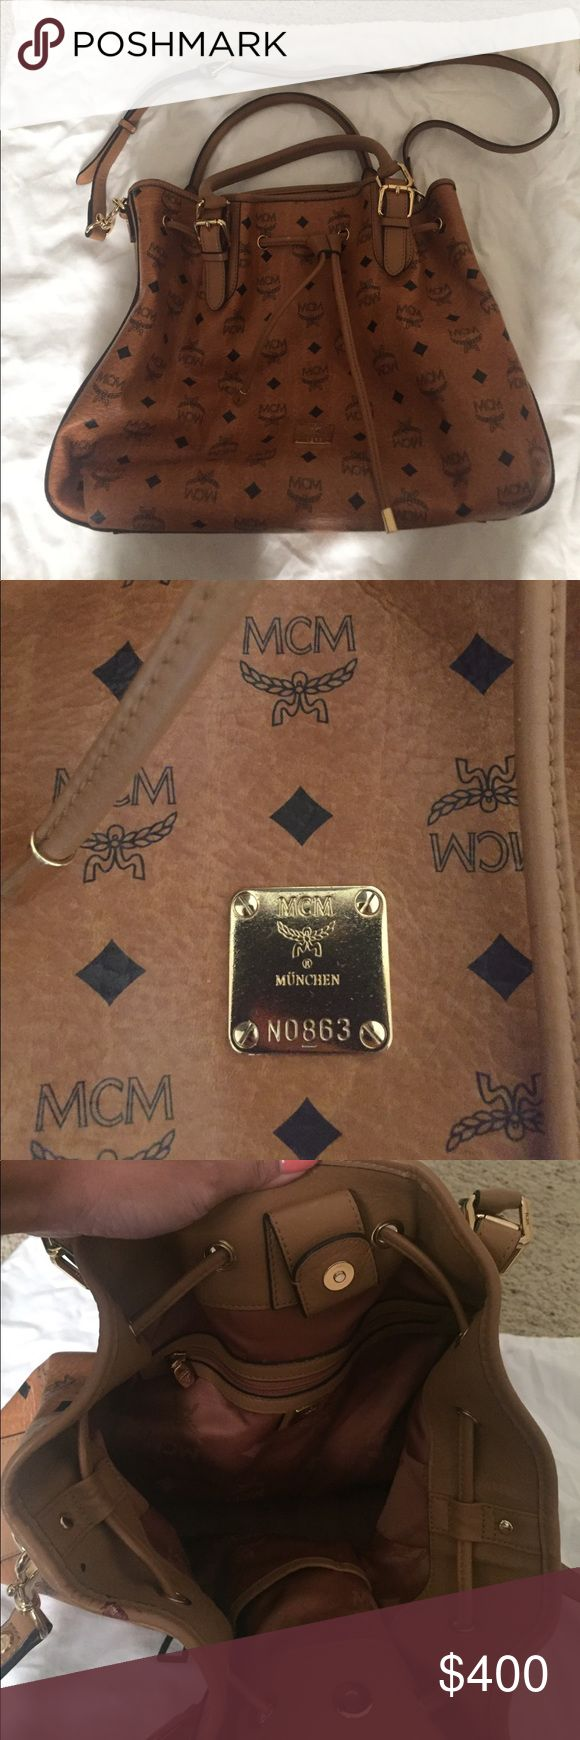 MCM purse gently used MCM  purse gently used, guaranteed authentic, no trading no modeling. MCM Bags Satchels